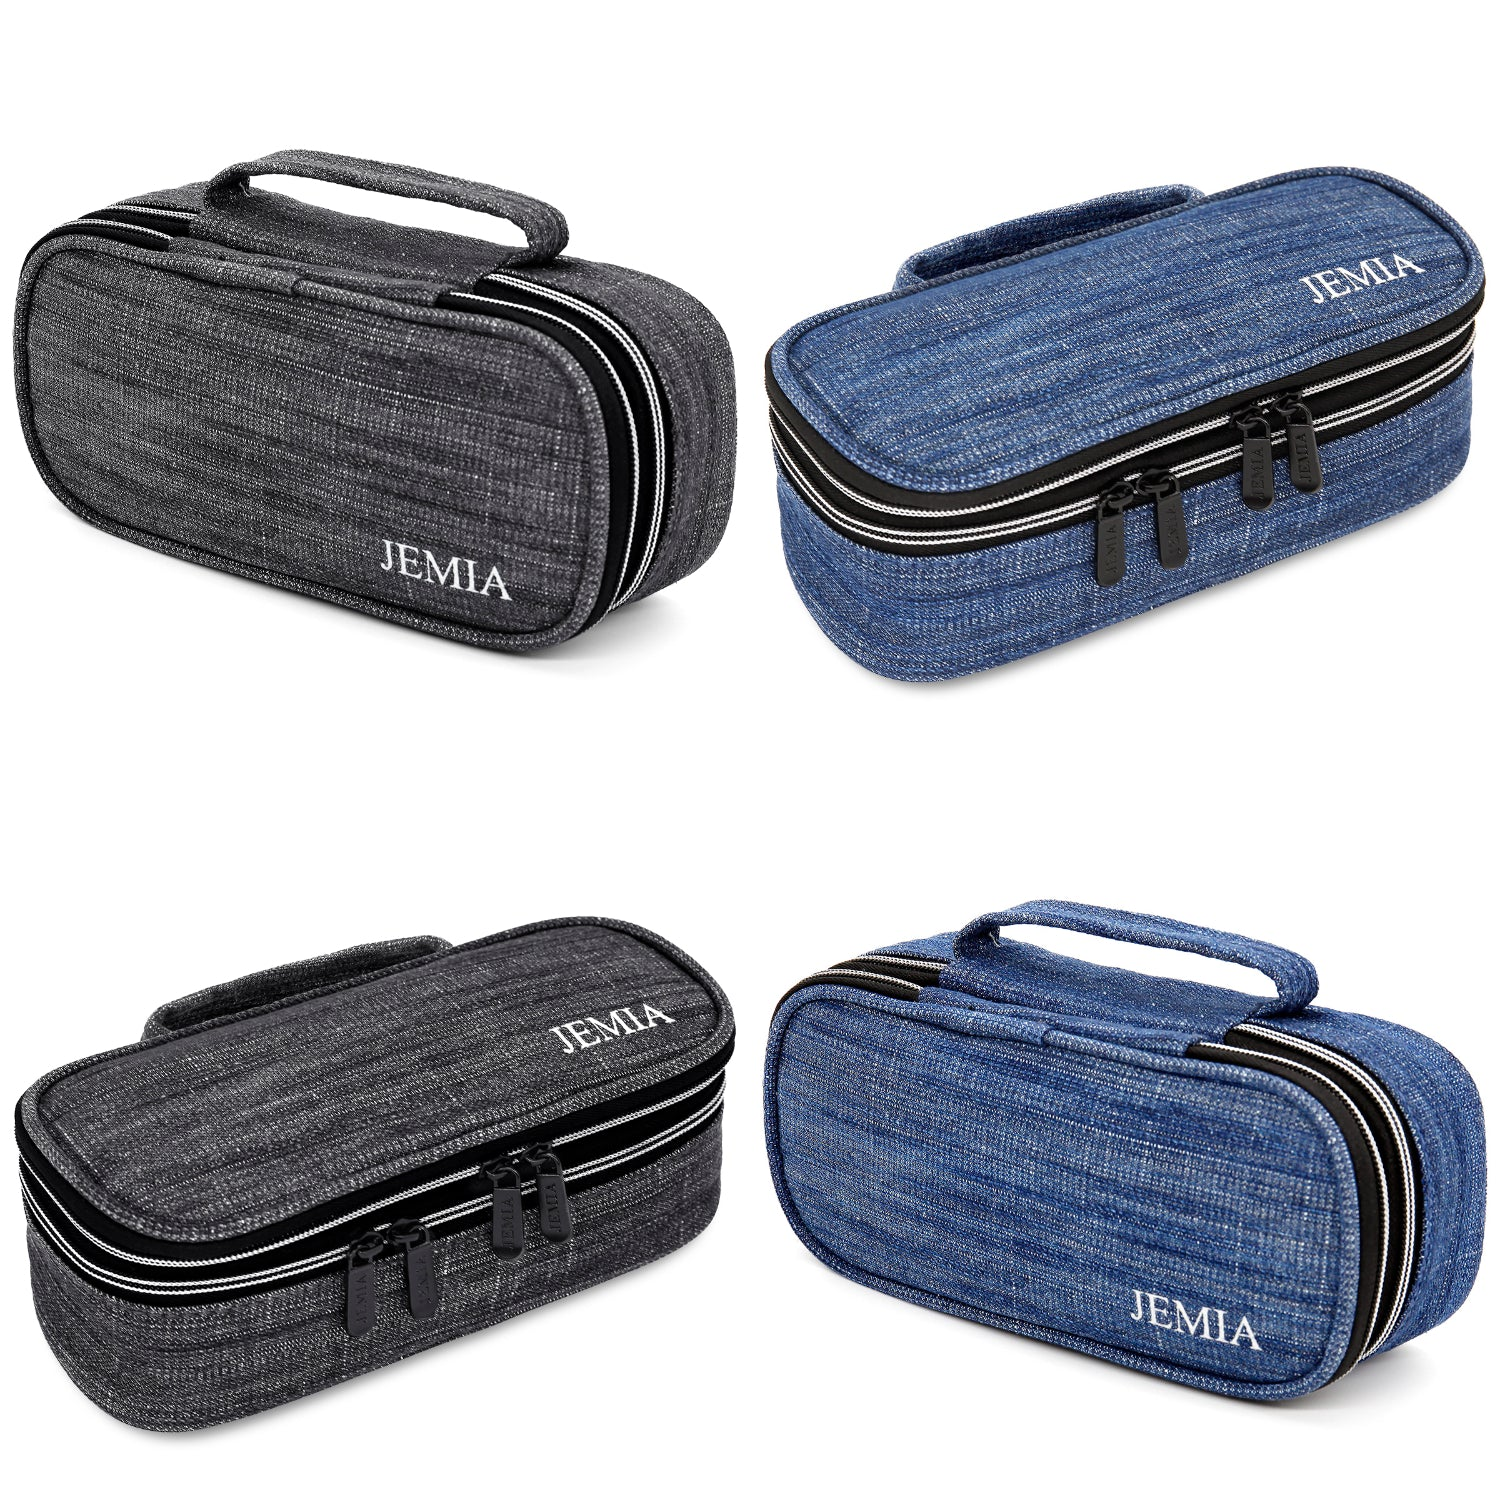 Square Dual Compartments and Handle Strap Pencil Case Mesh, Slot Pockets (Denim Jean Style, Canvas) - JEMIA